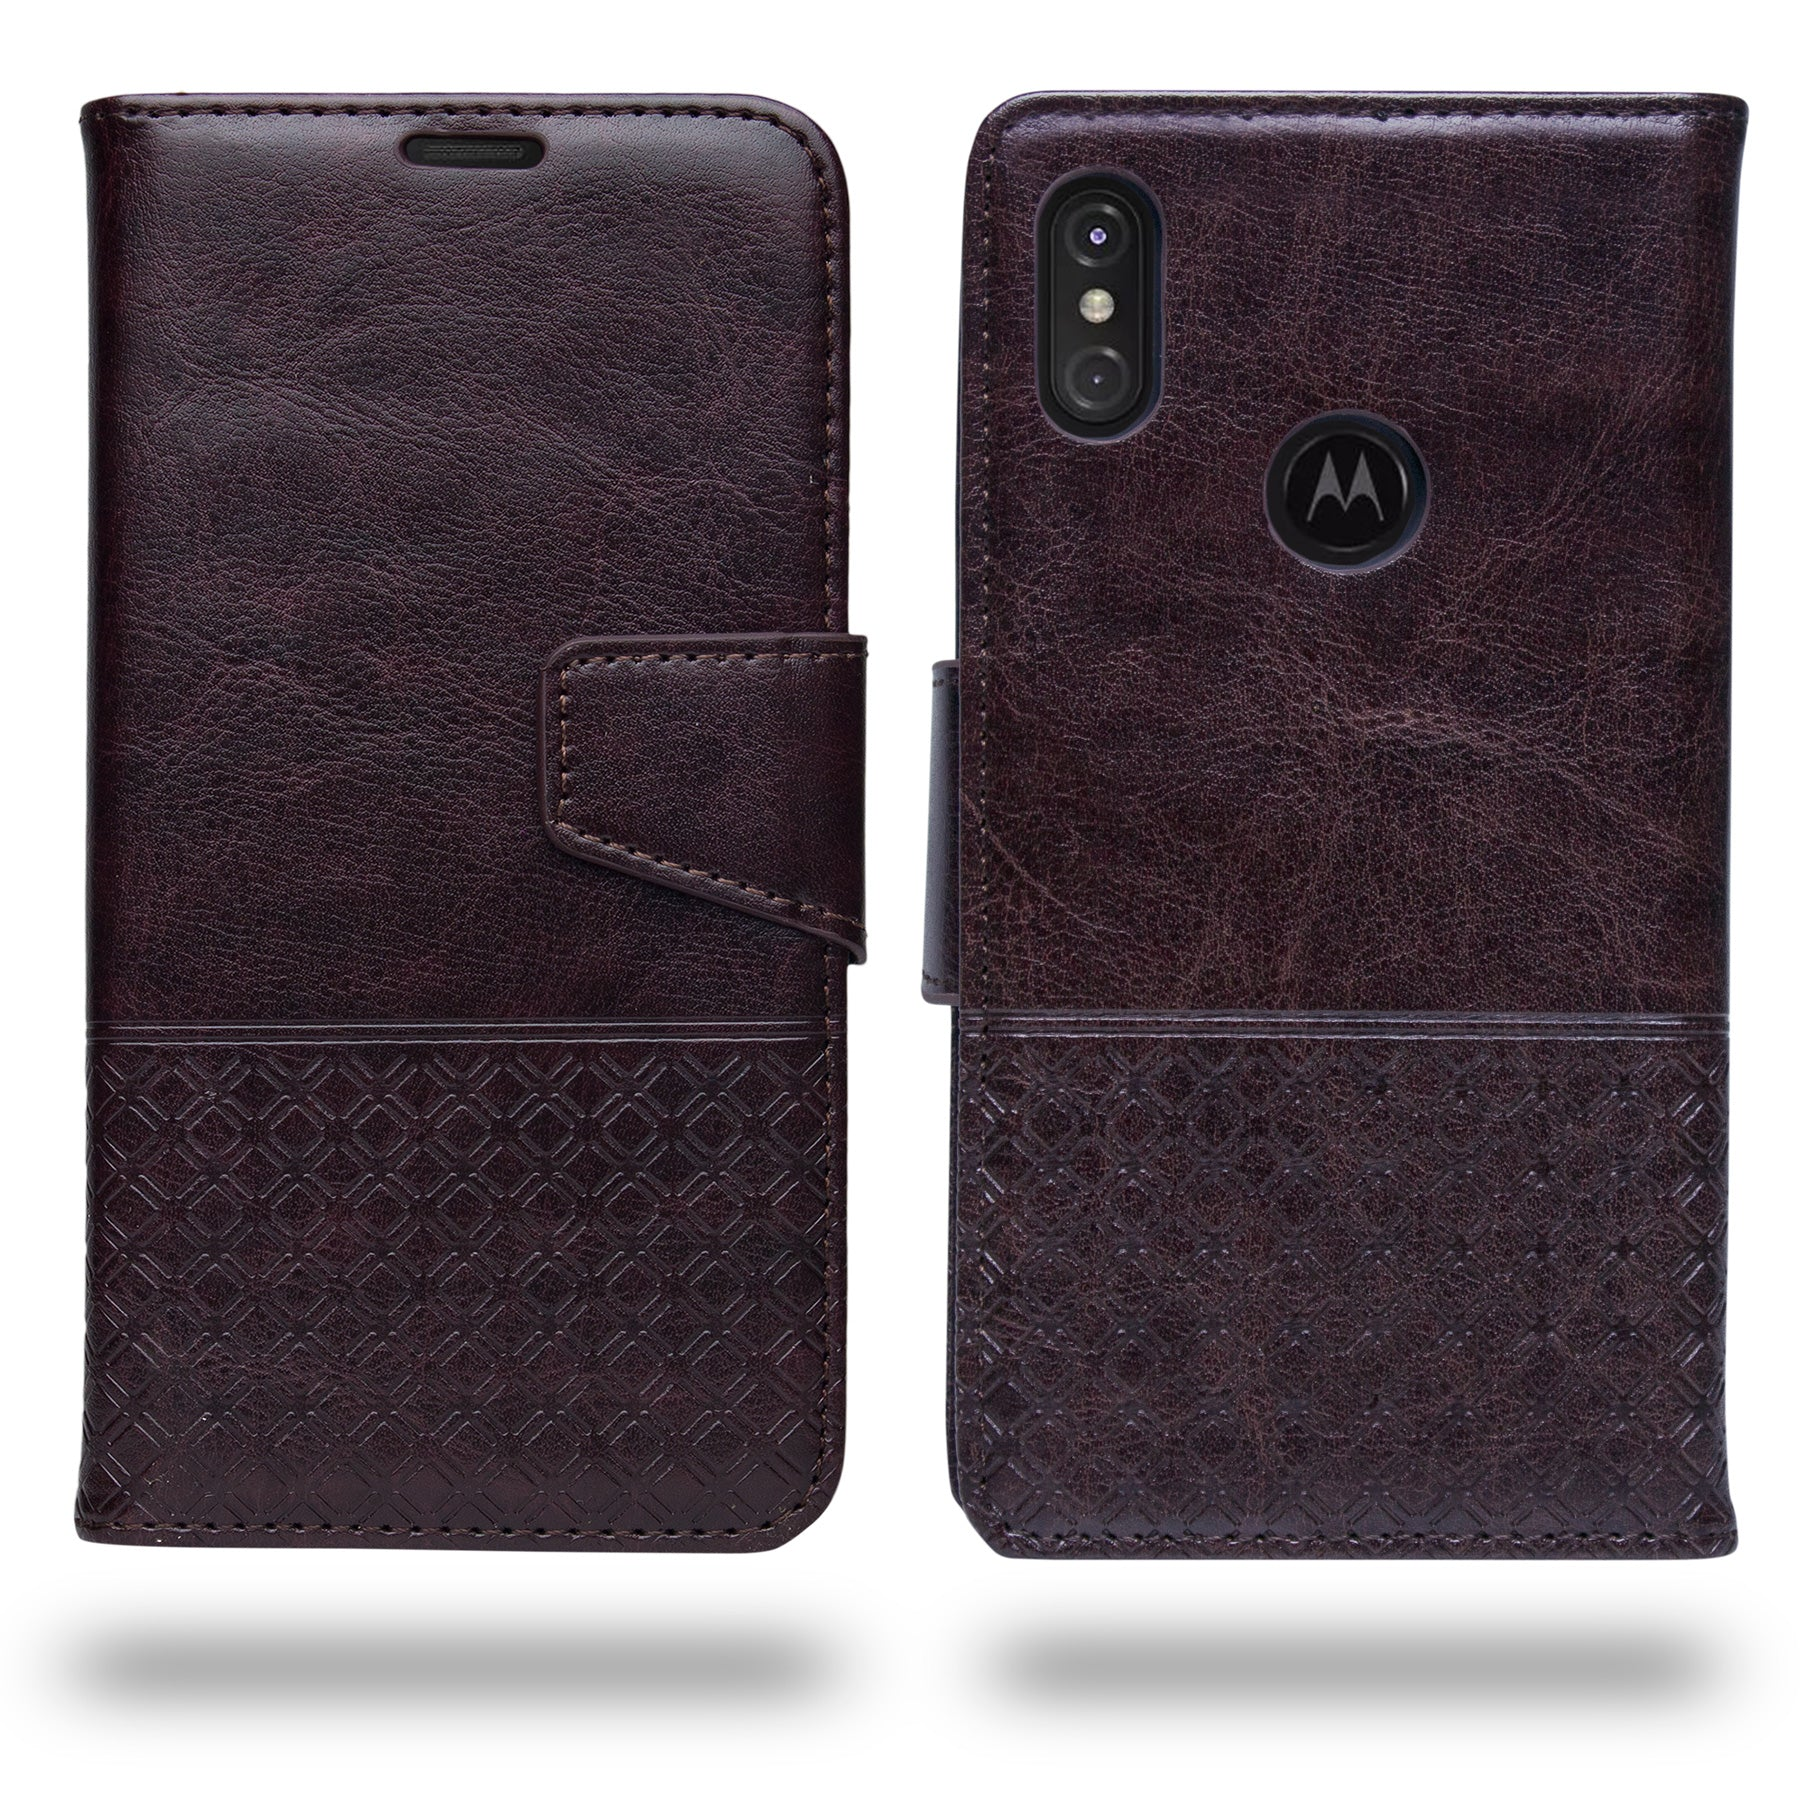 Ceego Luxuria Compact Wallet Flip Cover for Motorola One Power (Chestnut Brown)